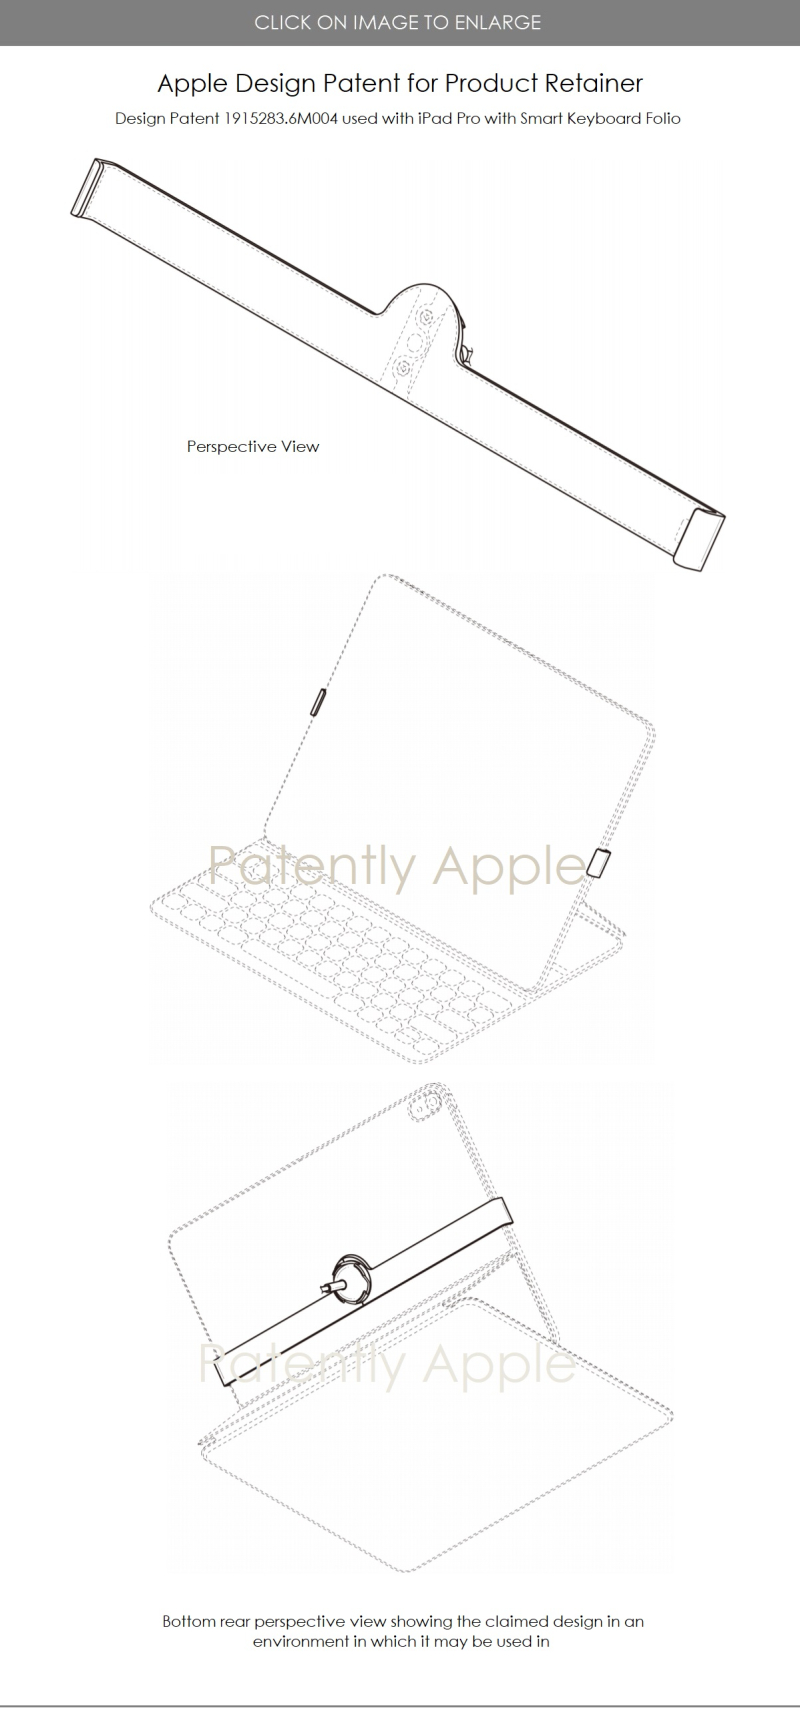 2 apple design patent for 6 retainers including iPhone ...